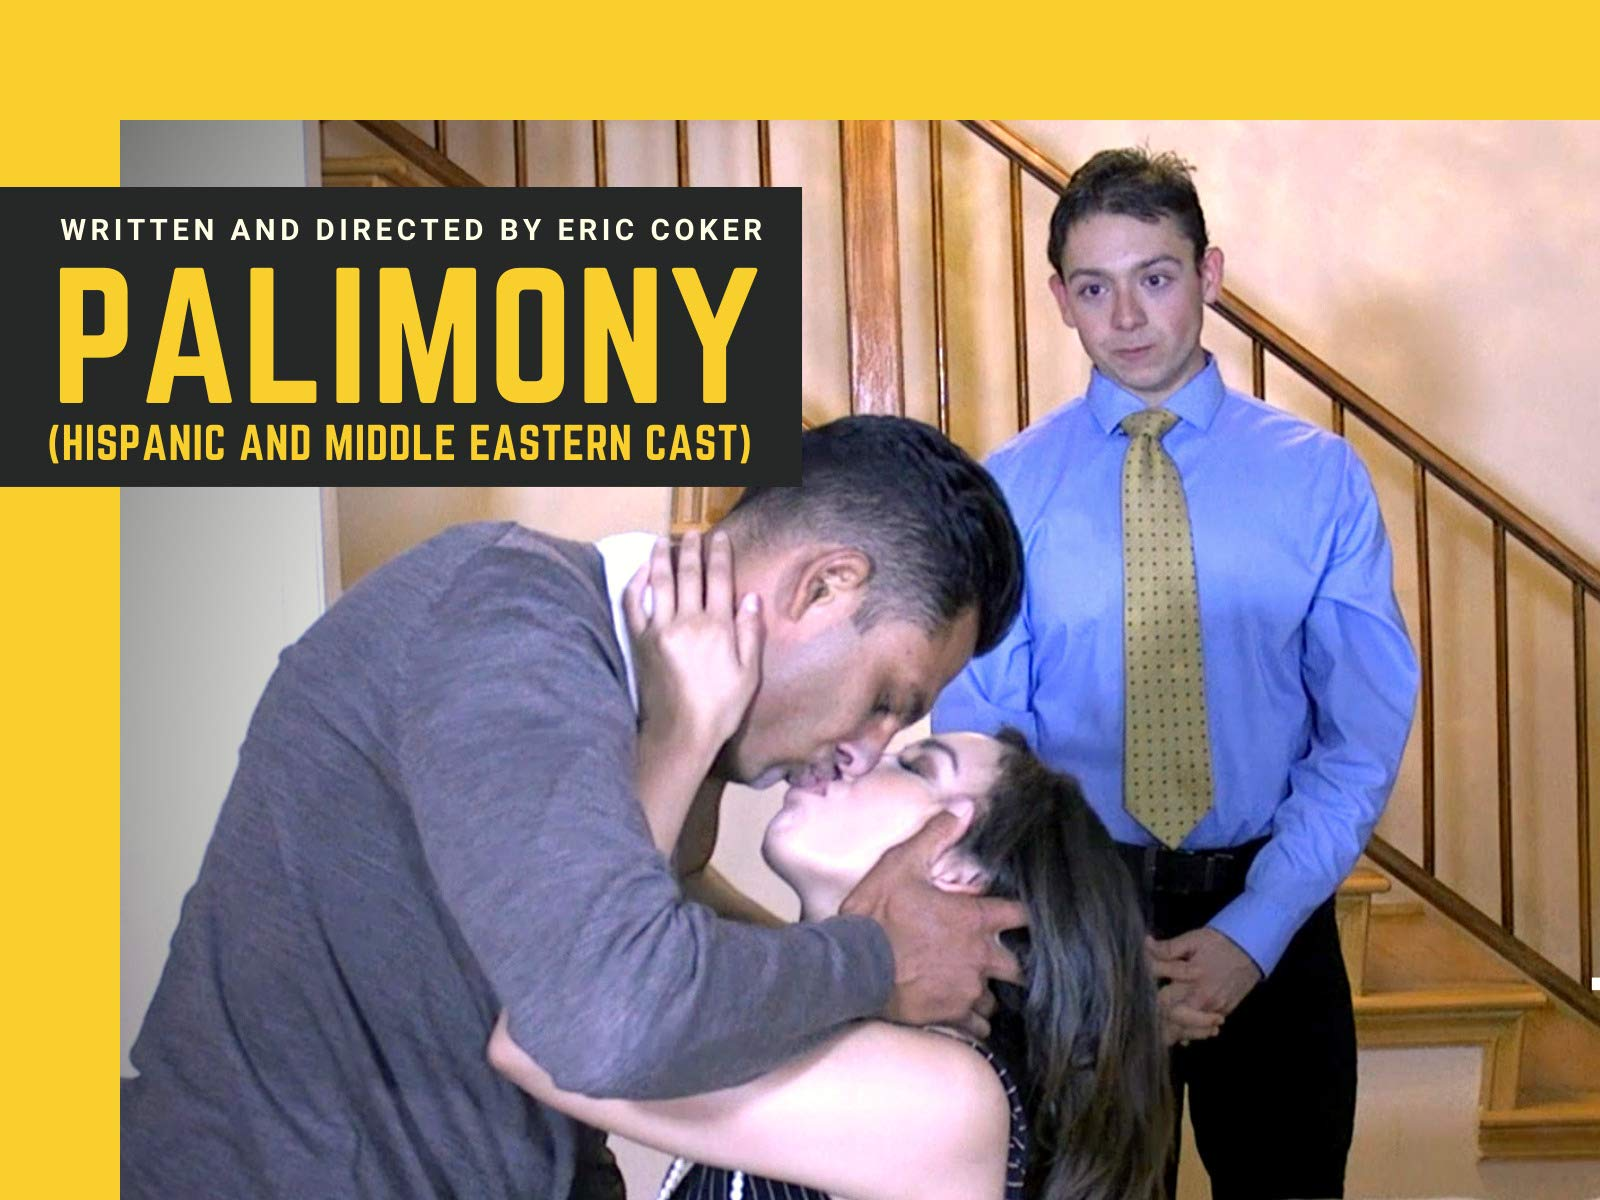 Palimony (Hispanic and Middle Eastern Cast)